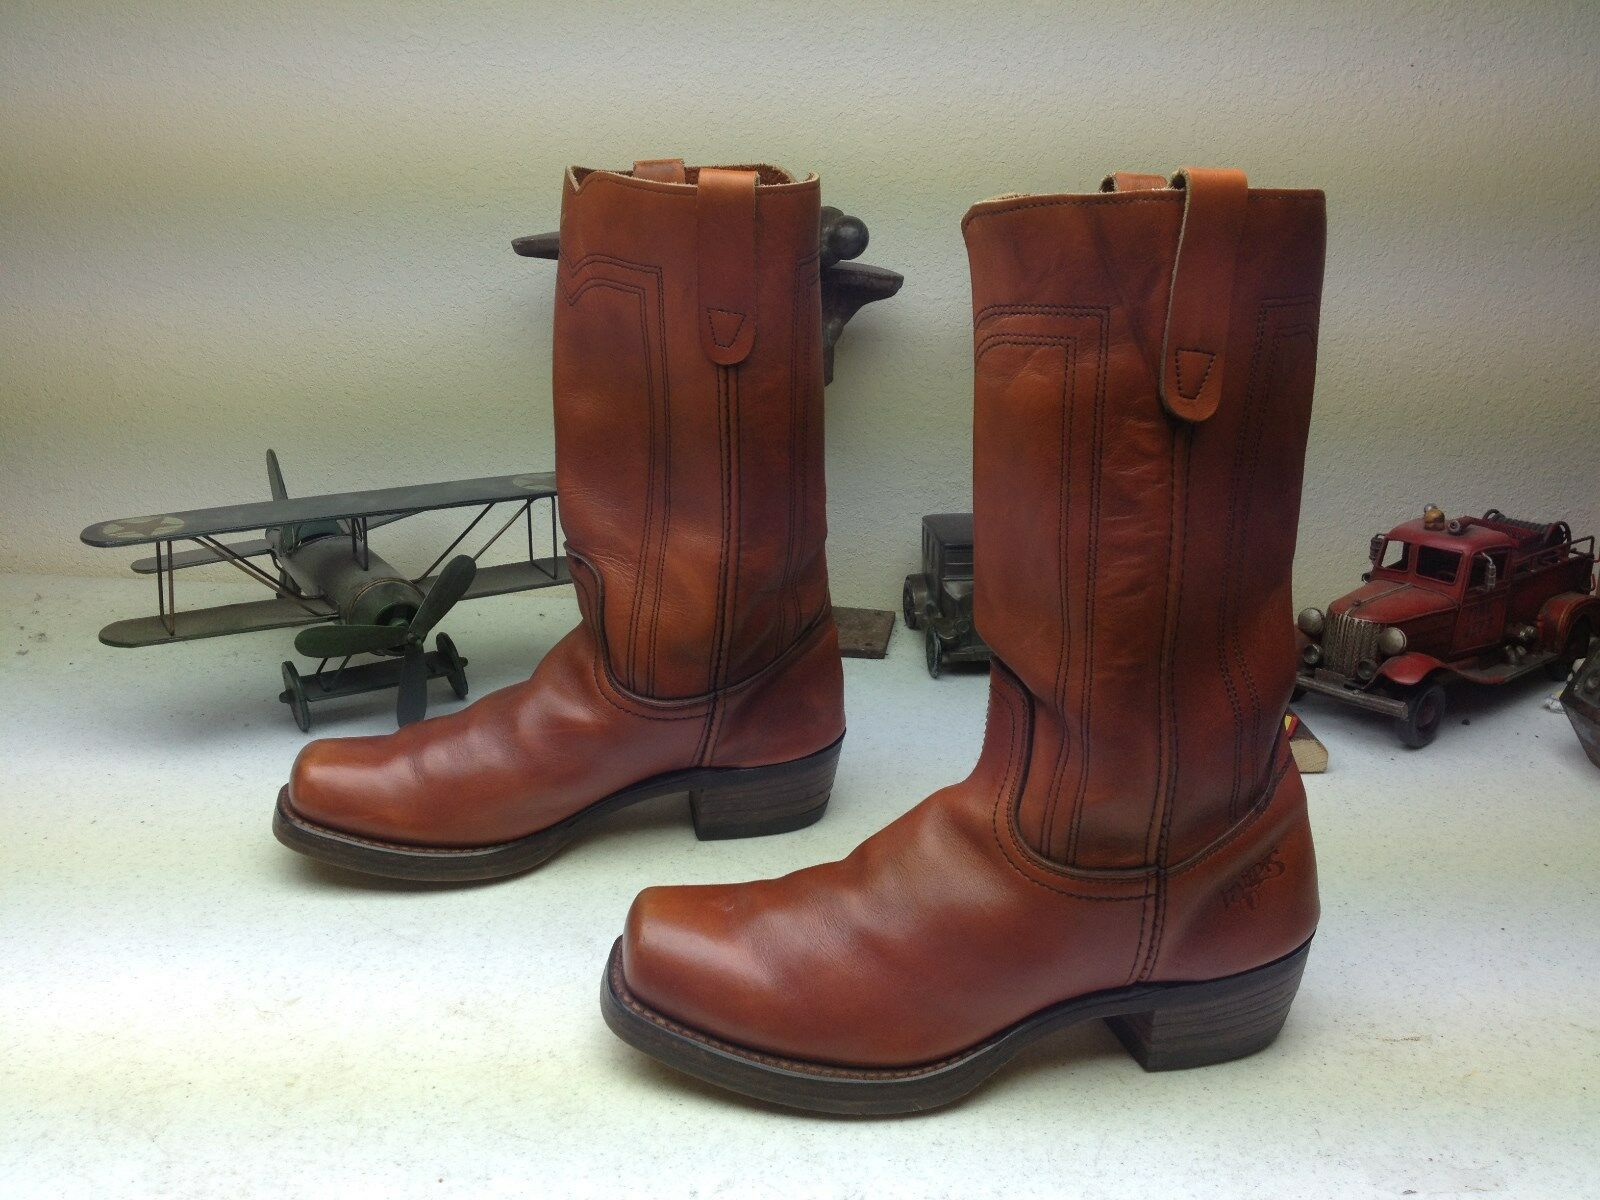 BROWN COPPER LEATHER LANDIS WESTERN SQUARE TOE CAMPUS ROAD VINTAGE BOOTS SIZE 8M